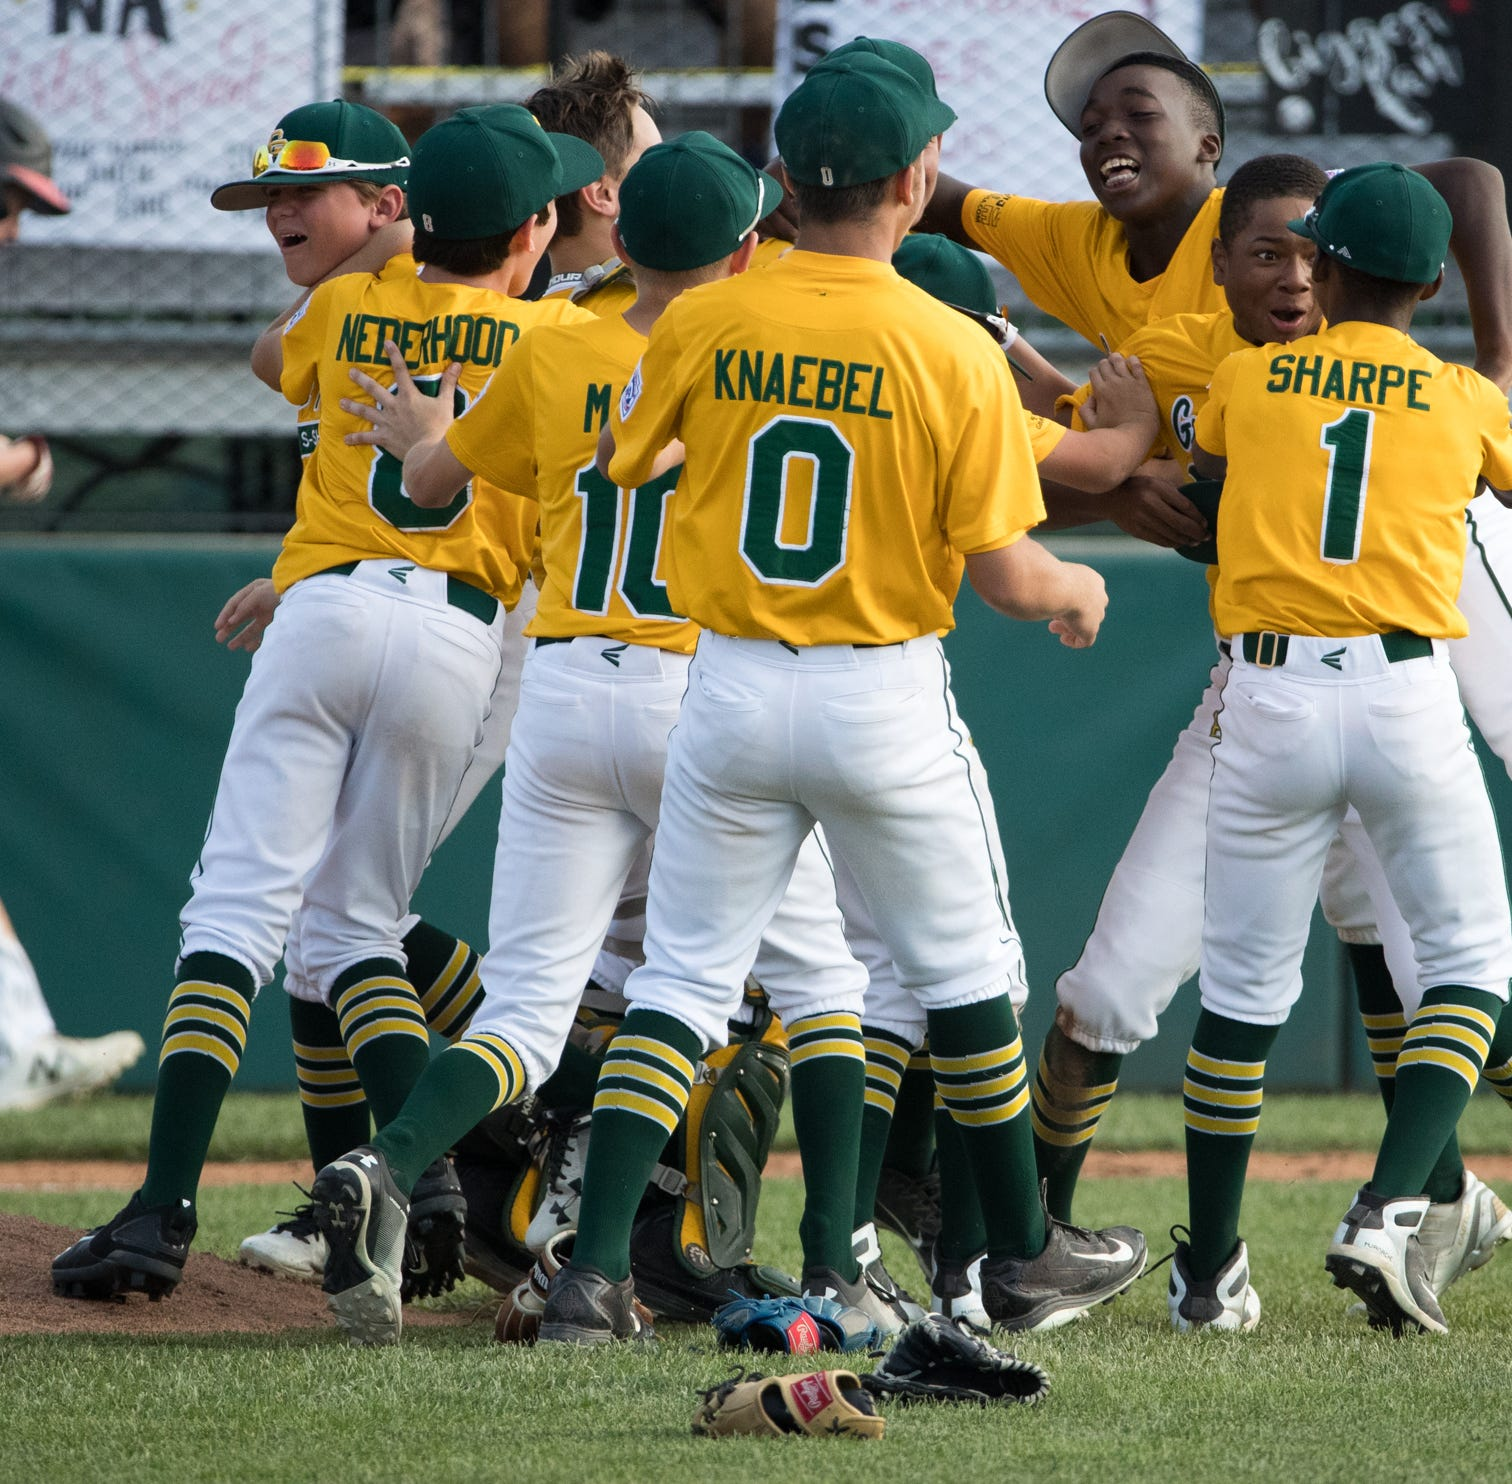 After loss before Little League World Series, Indiana team wonders if opponent played fair